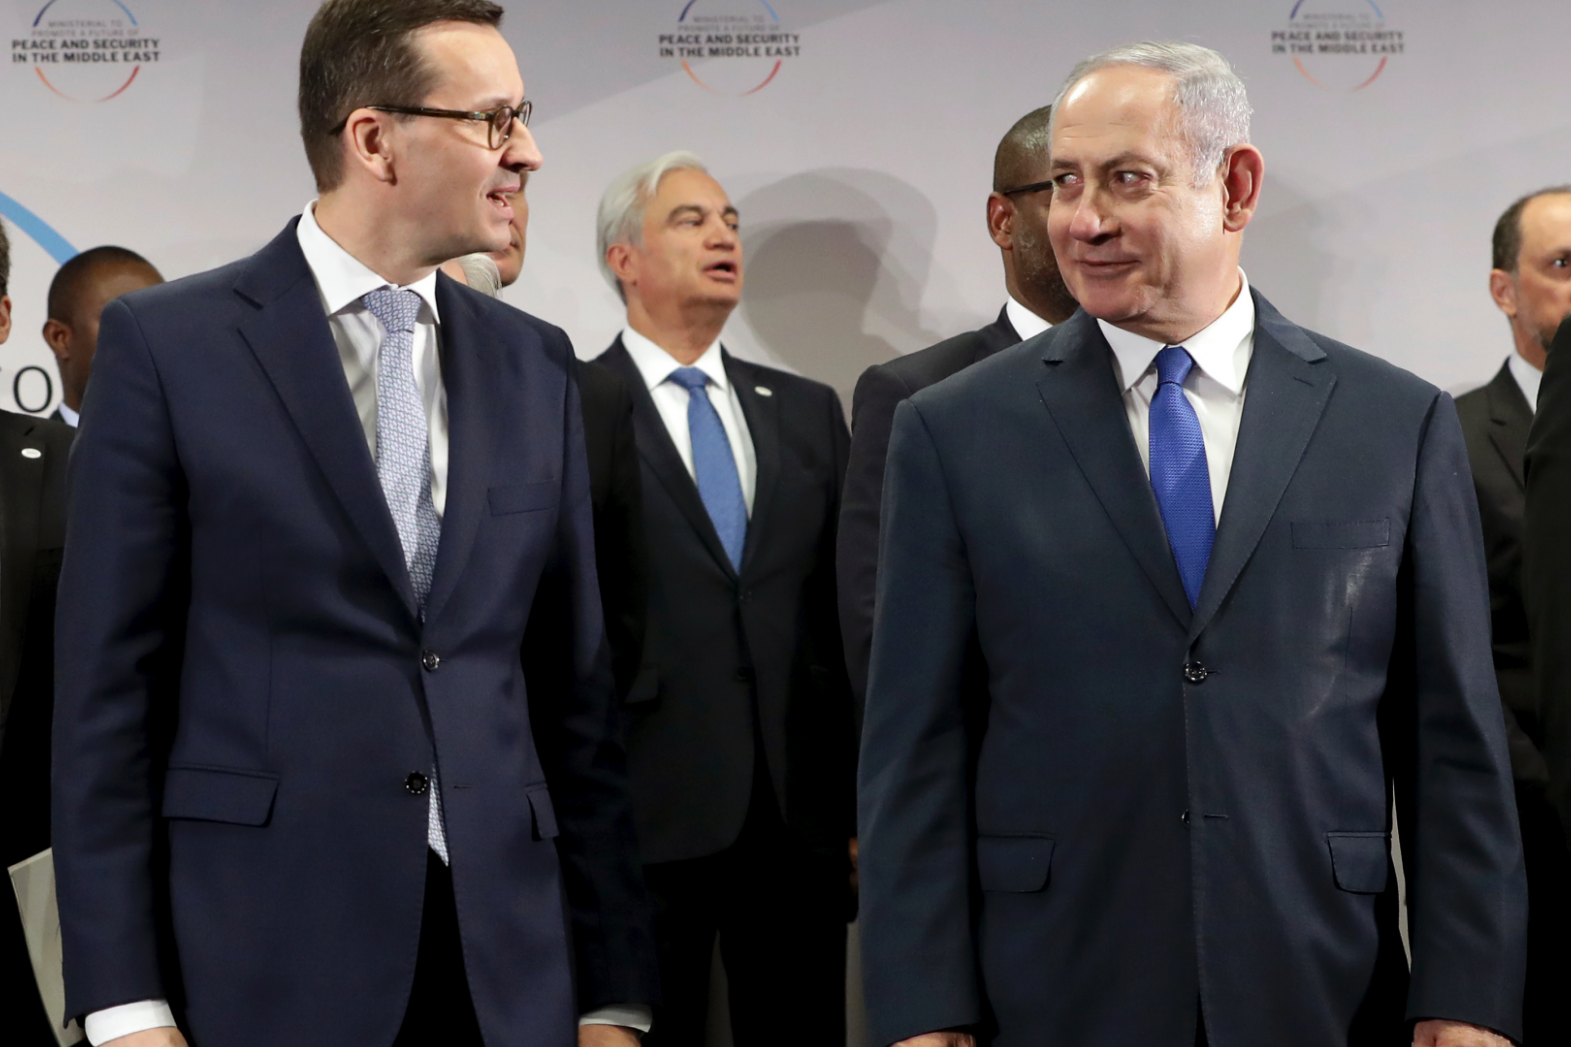 Will Israeli FM appologize to Poland over Nazi collaboration comments?